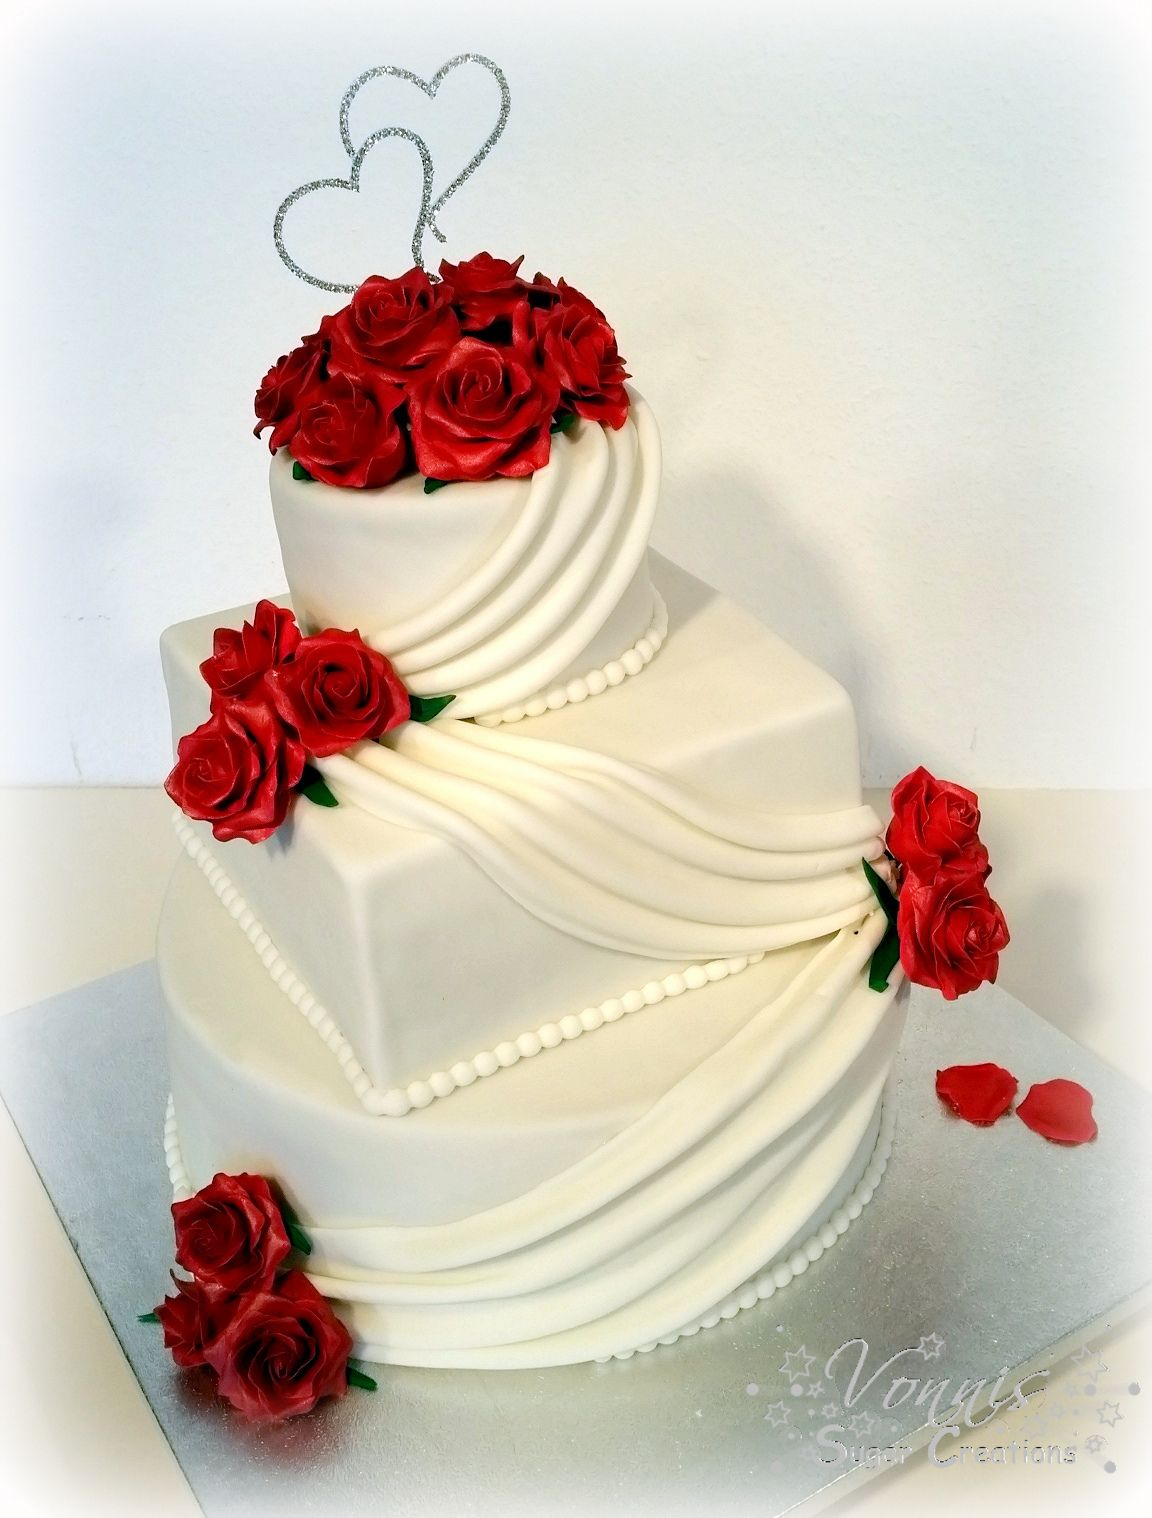 Wedding cake white red roses tier layer classic fondant flower